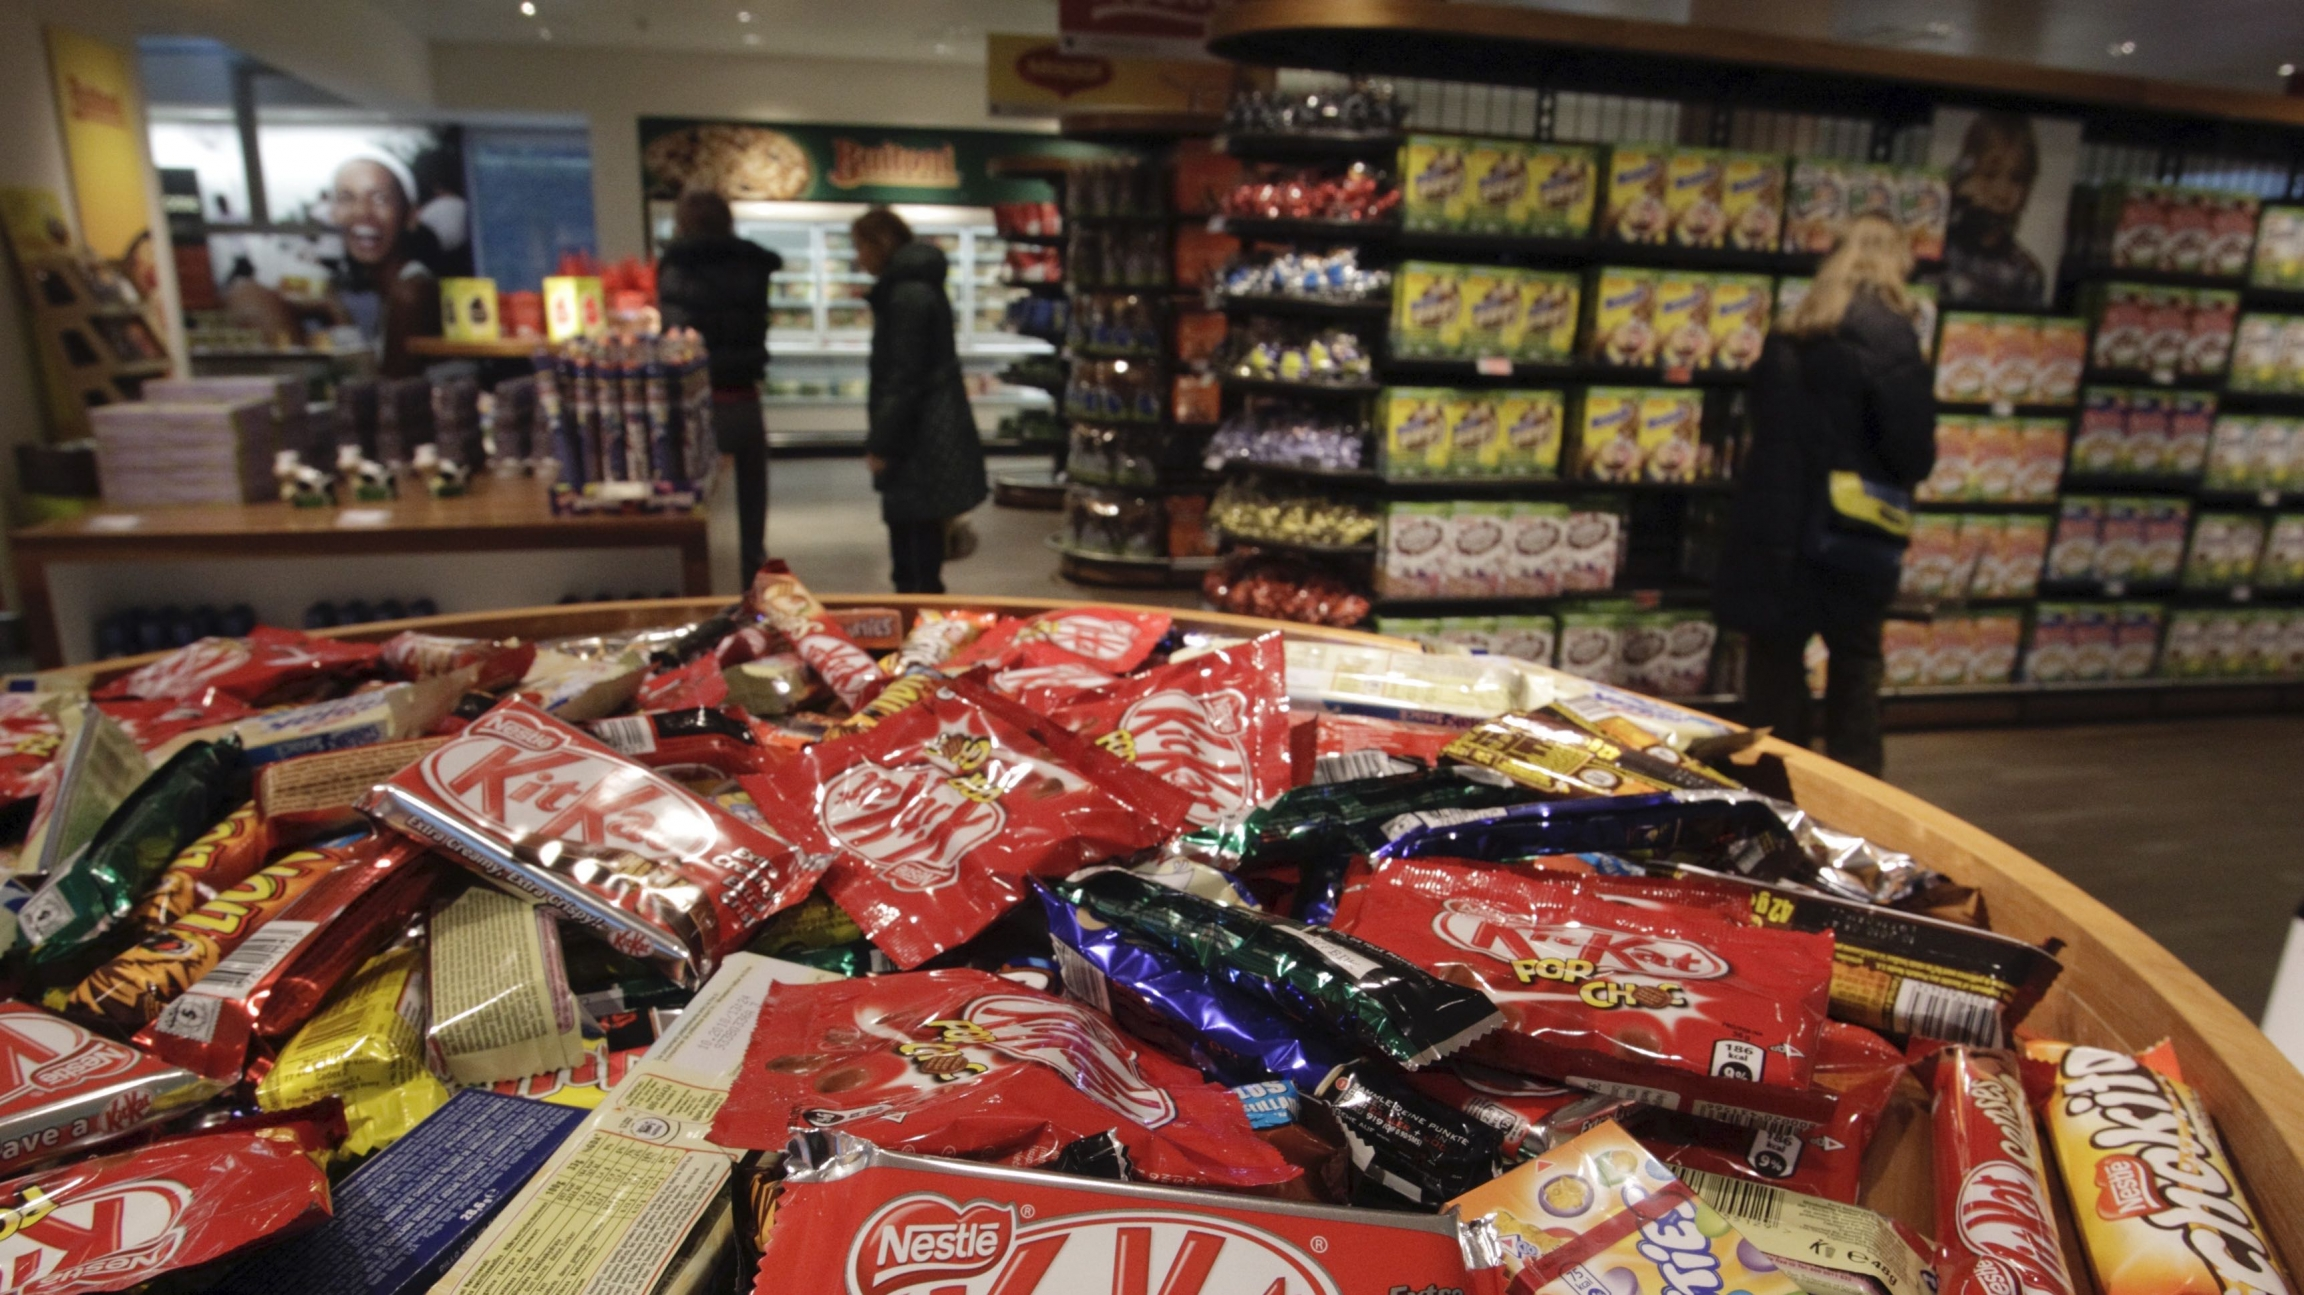 Different types of chocolate bars are seen in the company supermarket at the Nestle headquarters in Vevey, Switzerland, Feb. 19, 2010. Nestle, the world's biggest food group, is aiming for higher underlying sales growth in 2010 after a robust performance